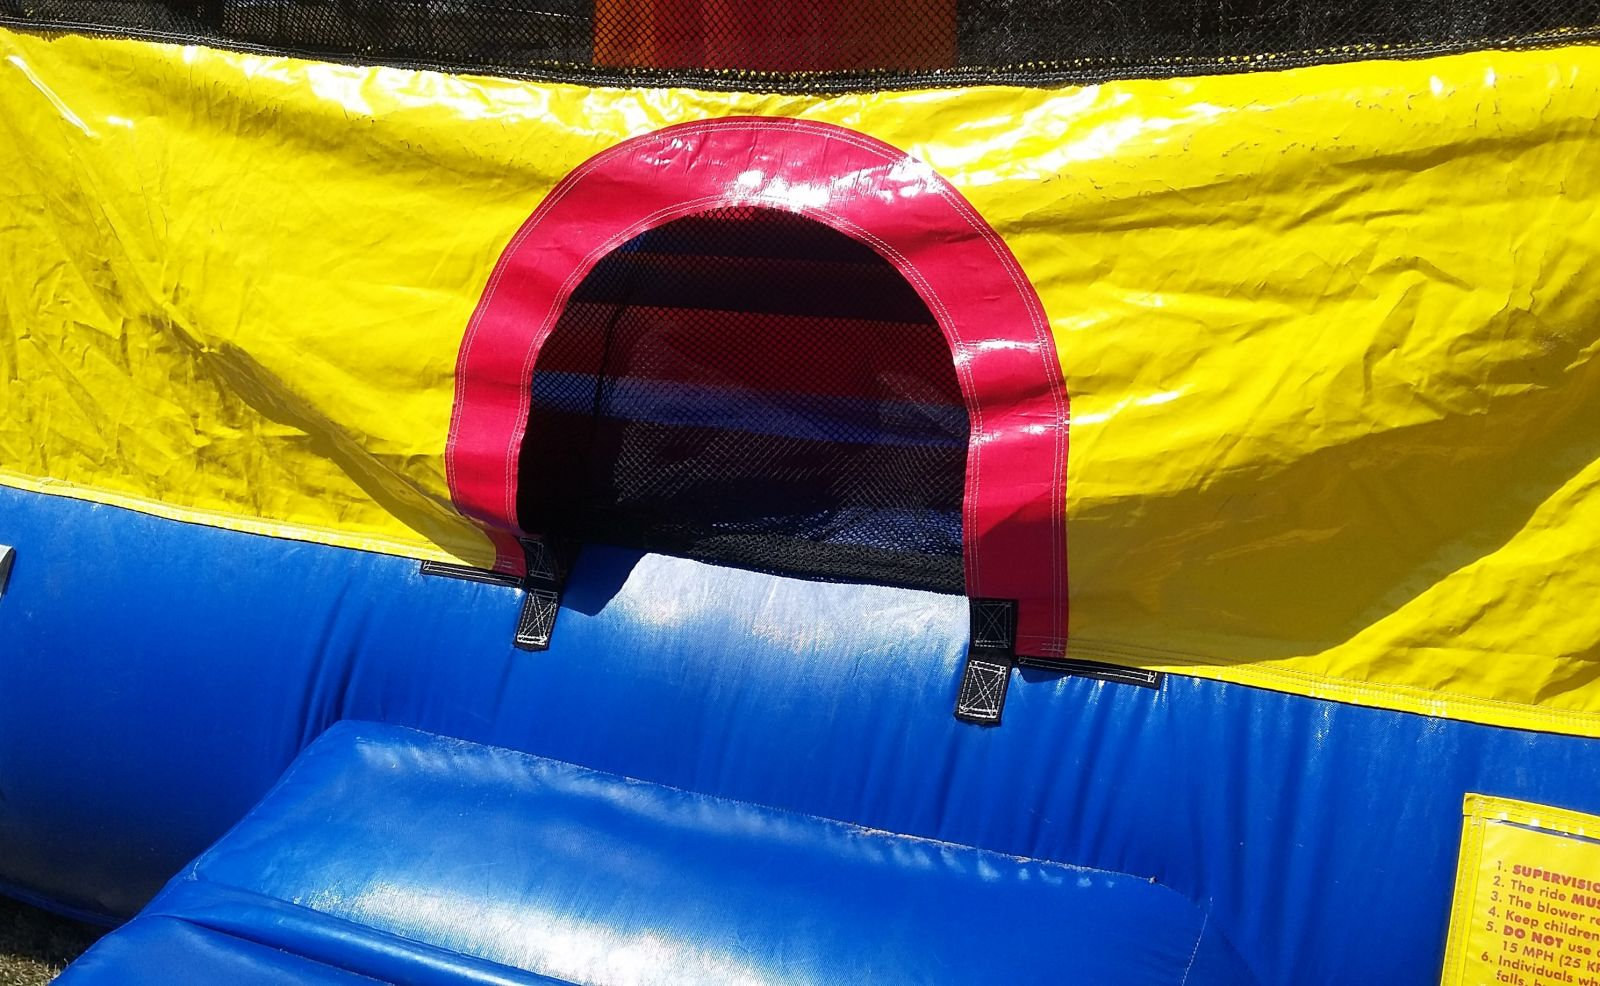 Entrance with Safety Closure to Bounce House